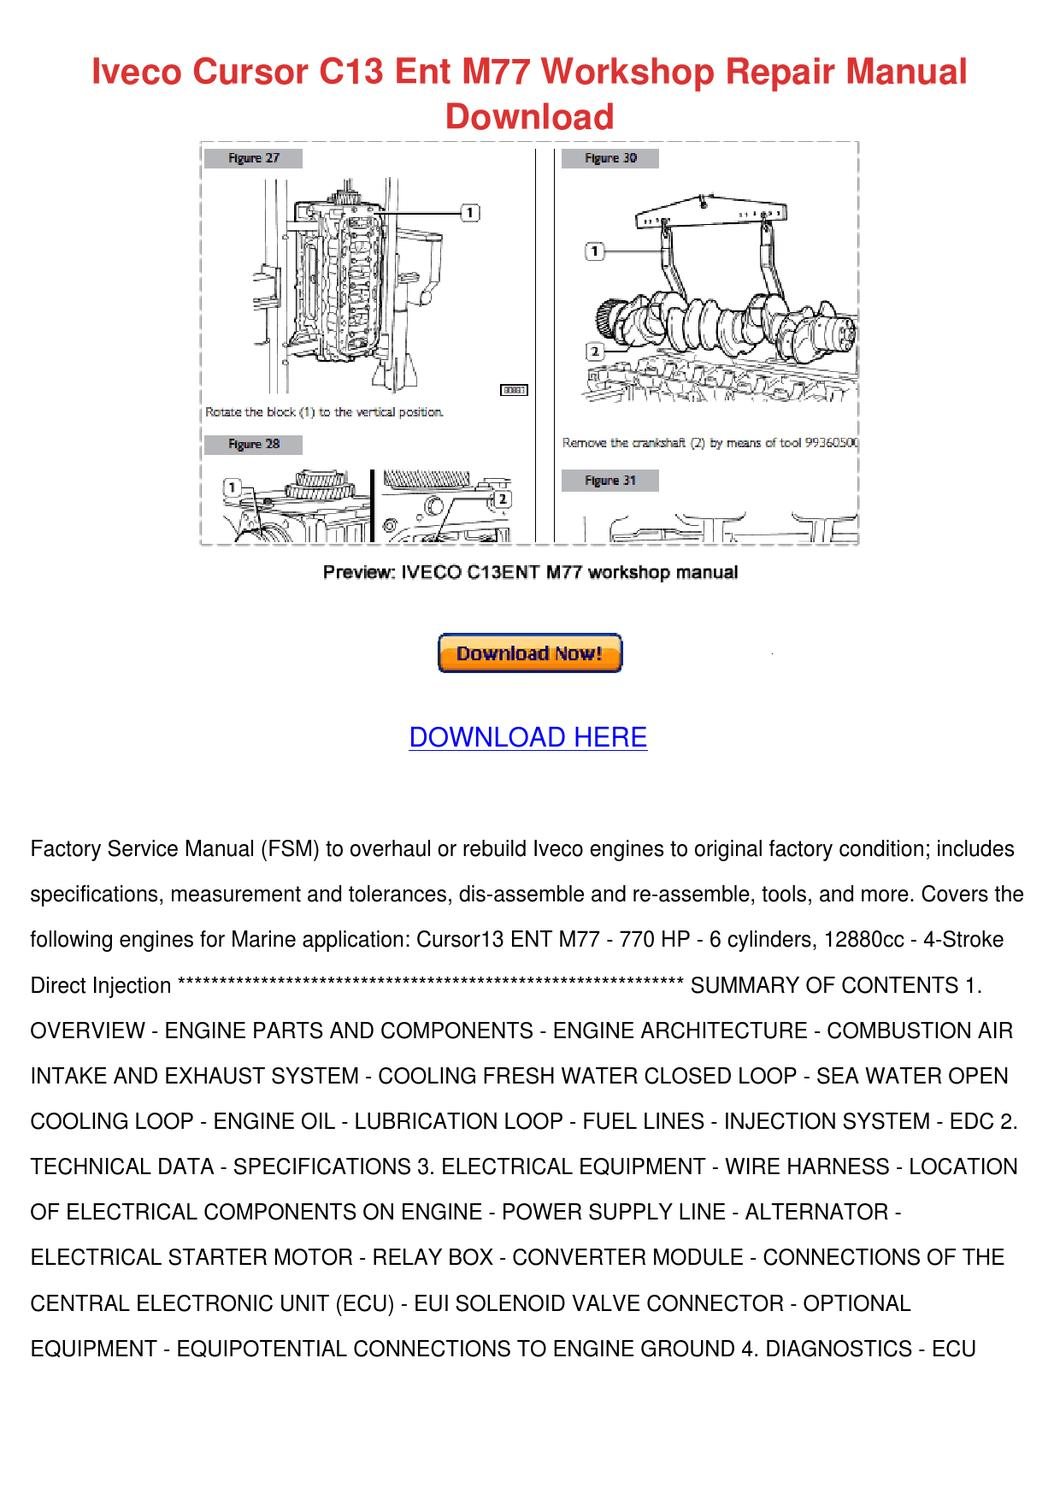 hight resolution of iveco cursor c13 ent m77 workshop repair manu by darci lovering issuu 2001 arctic cat 400 wiring diagram